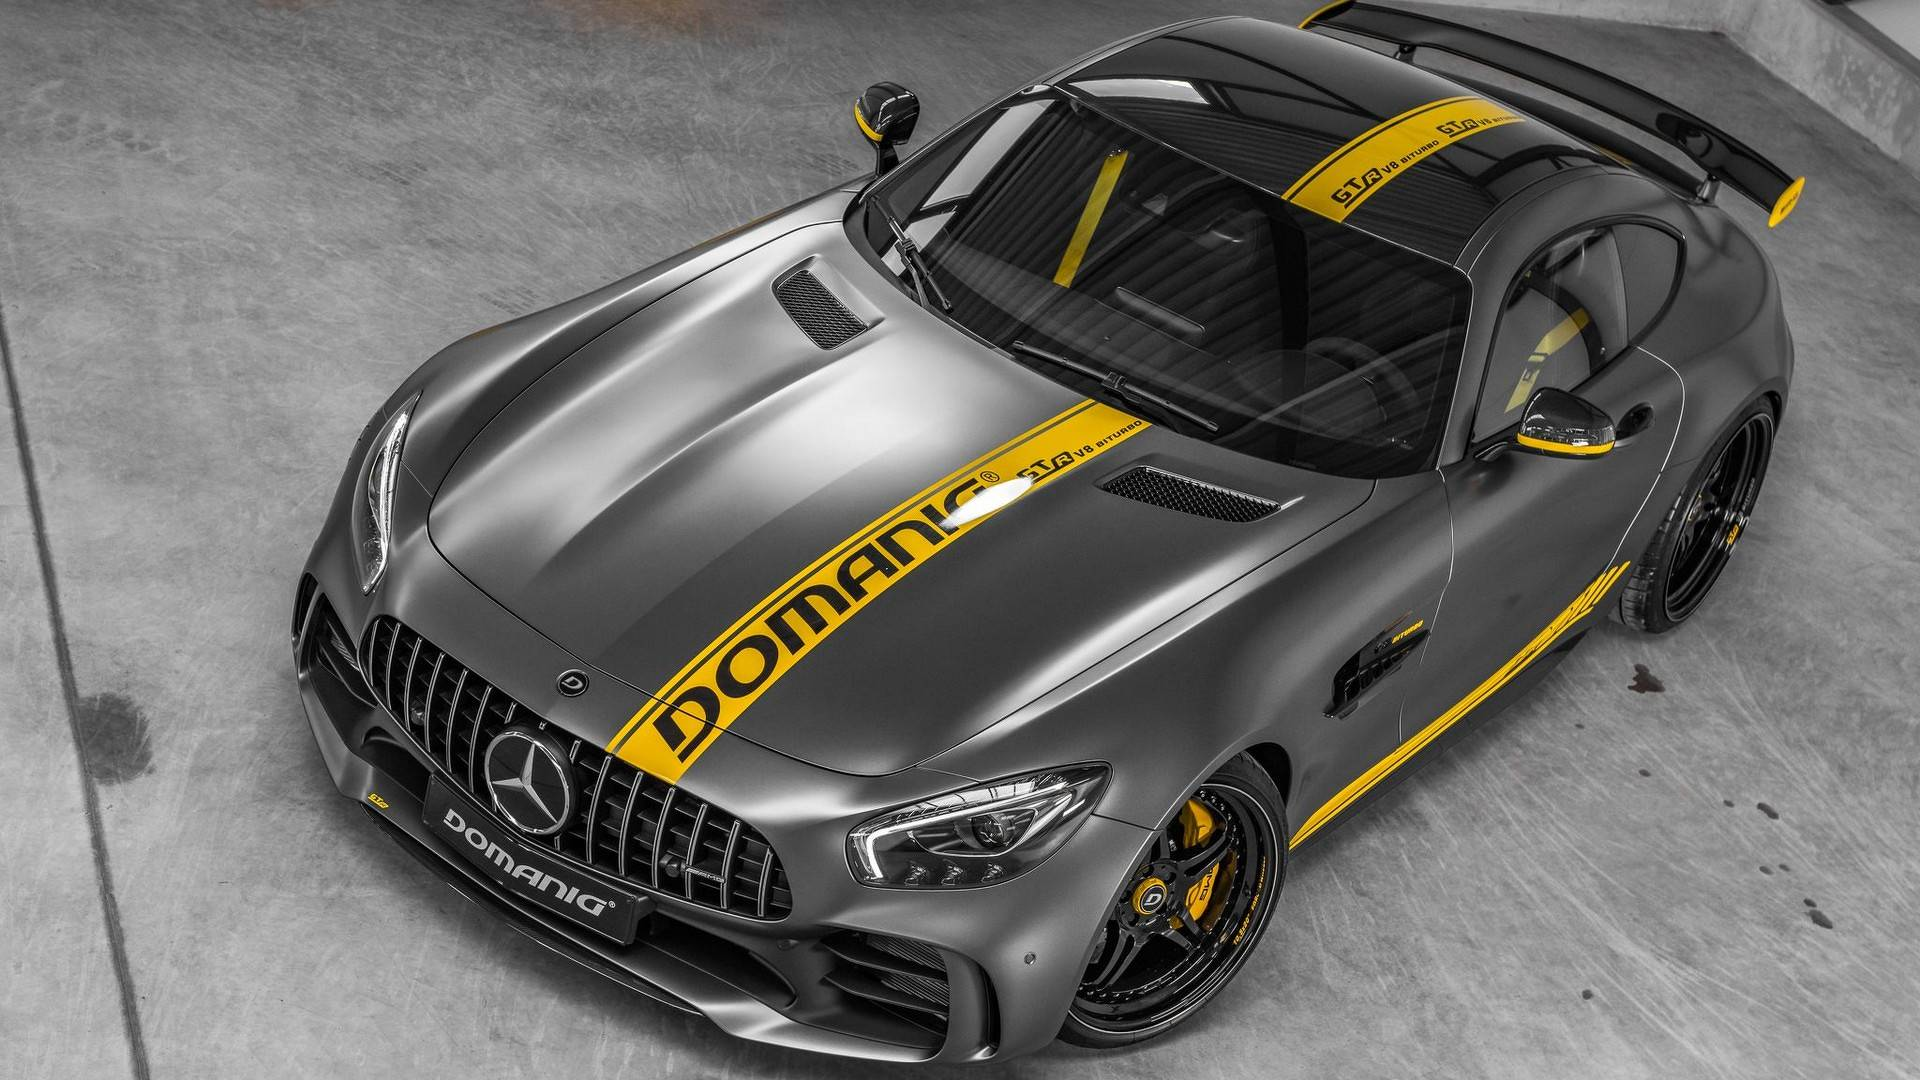 Those of us lucky enough to own a Mercedes-AMG GT R sports car may now retrofit it for even more performance and dynamics thanks to an upgrade package released by Domanig Autodesign in cooperation with IMSA